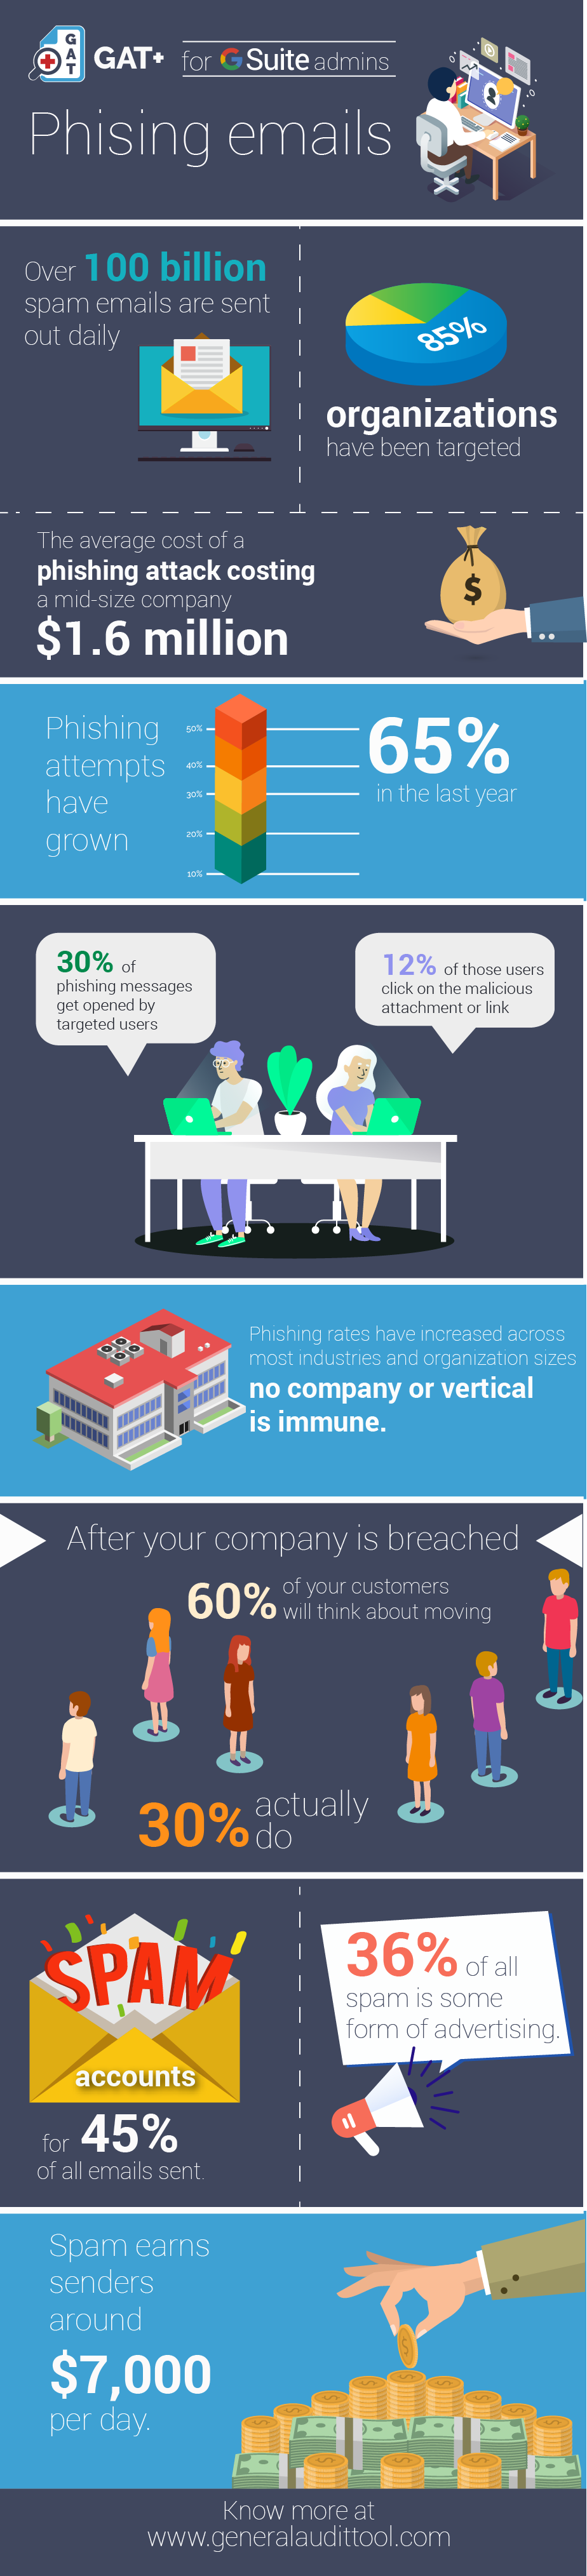 Phishing emails infographic